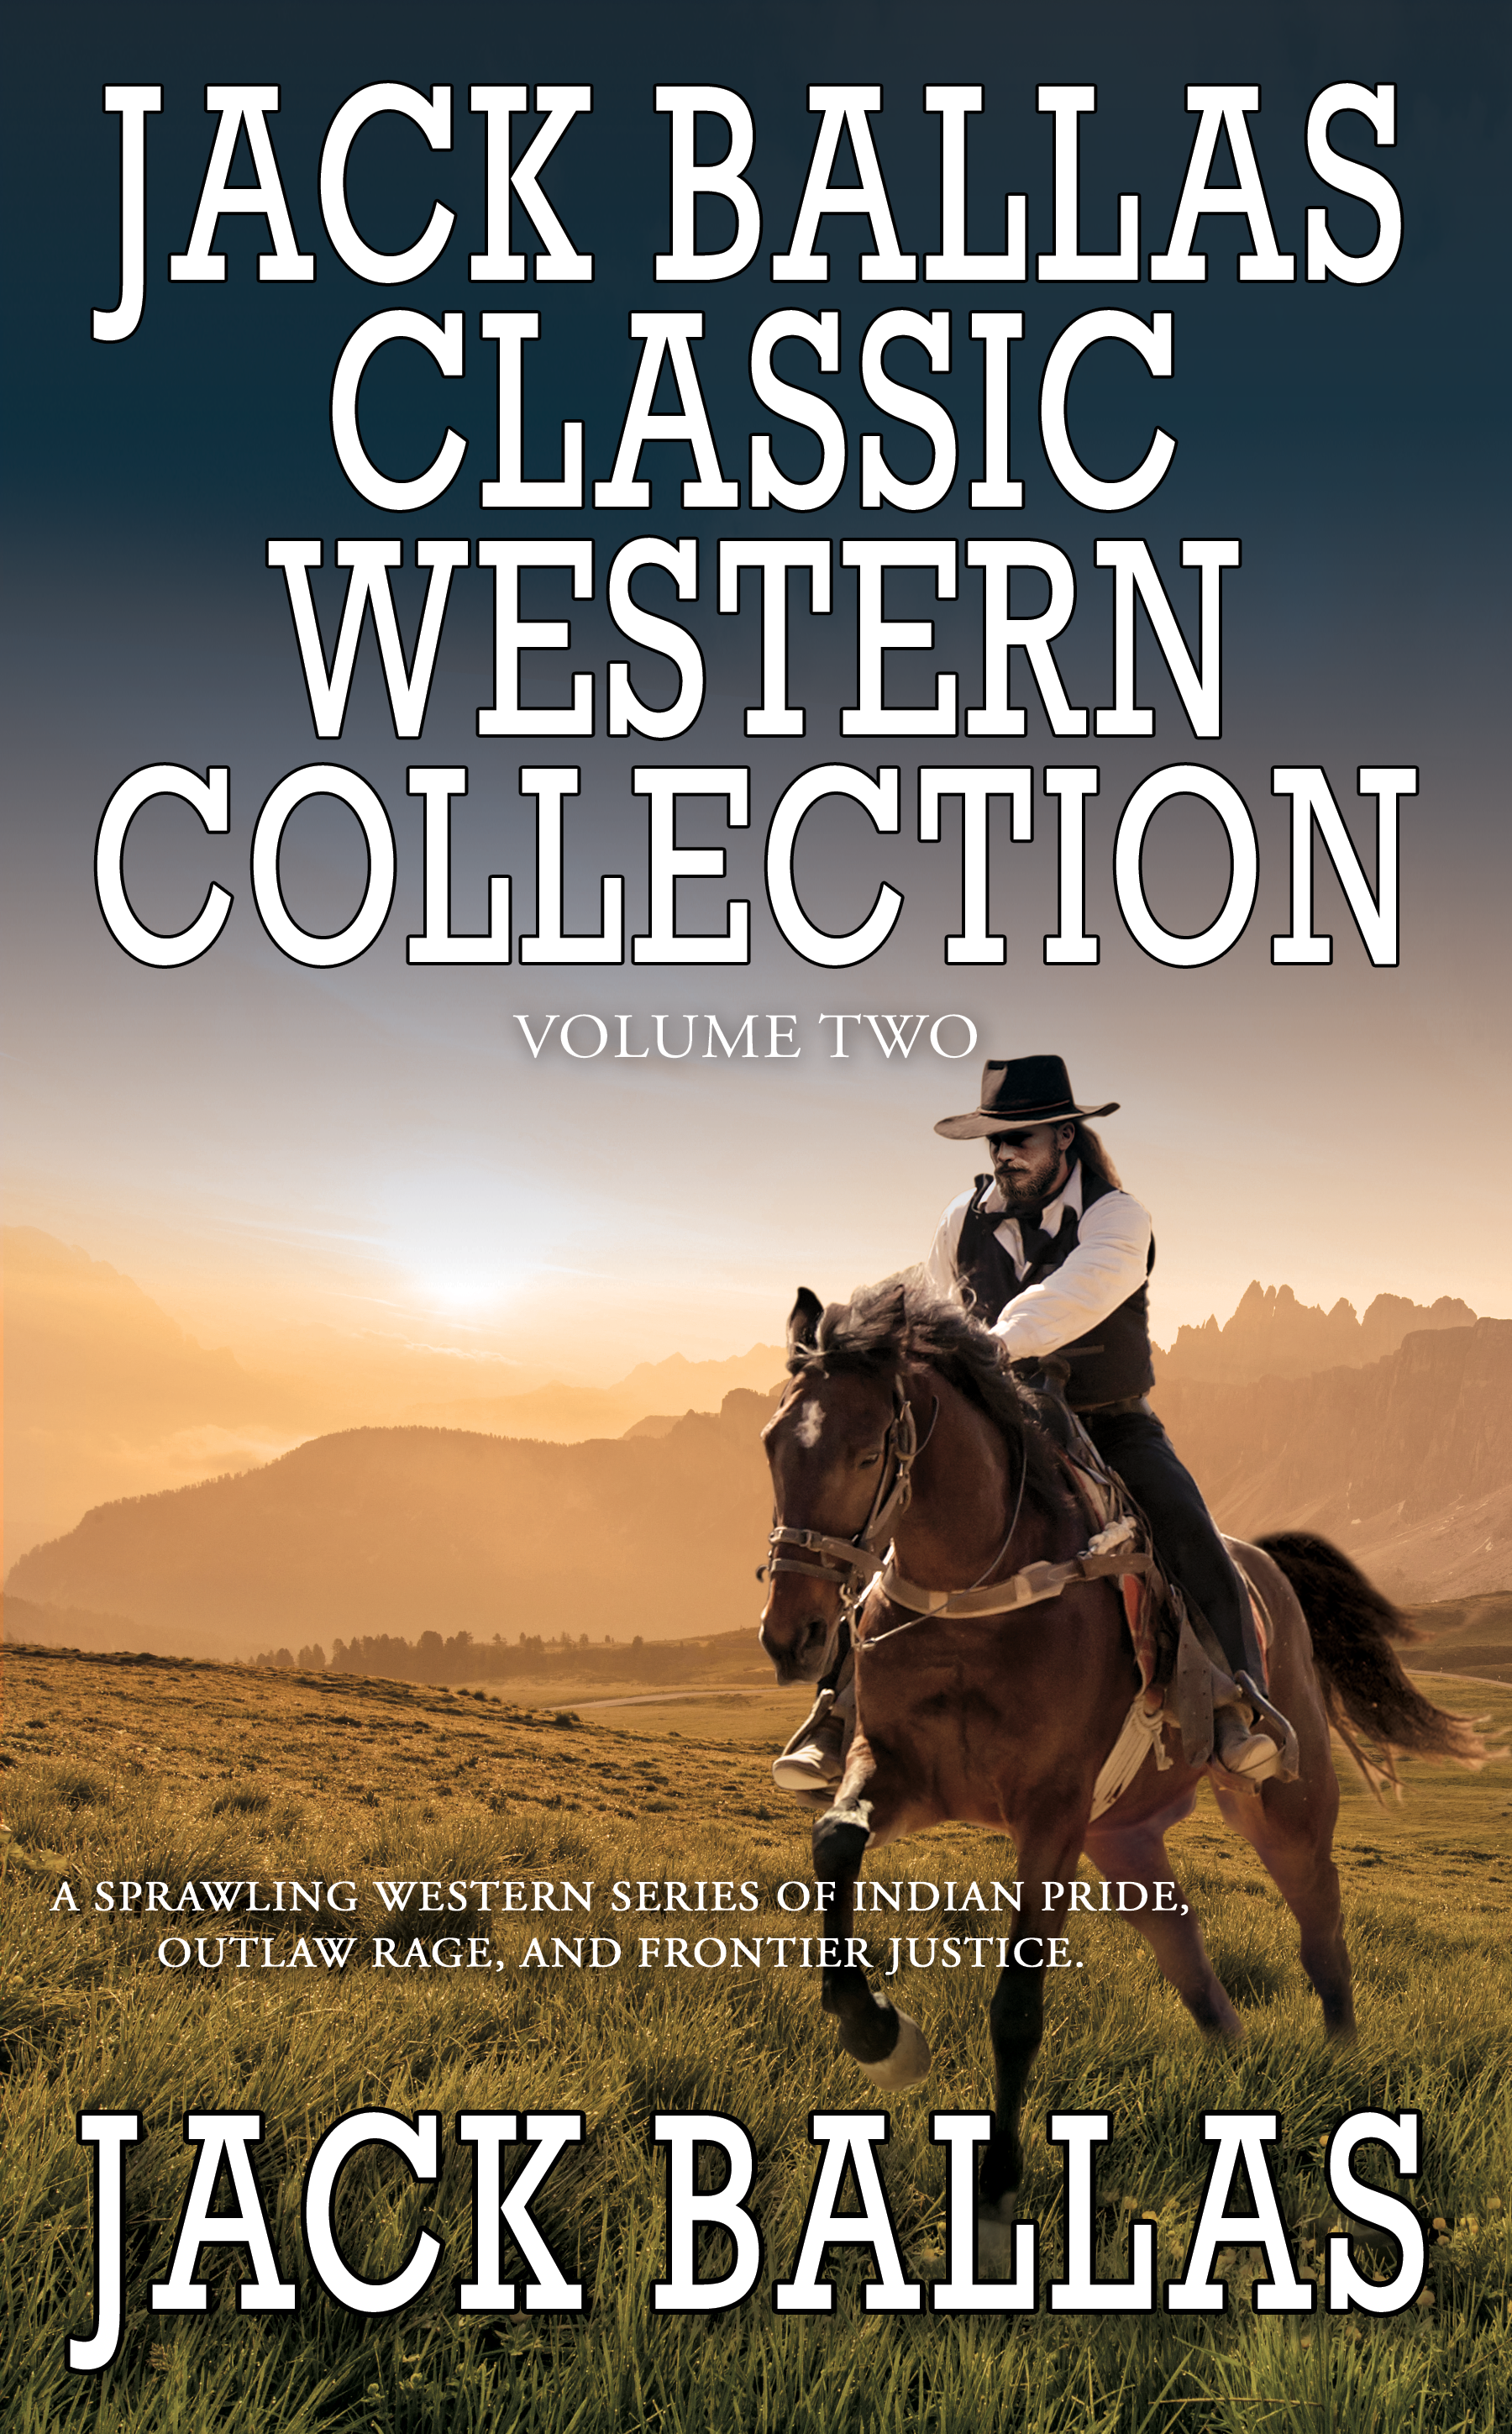 Jack Ballas Classic Western Collection, Volume 2